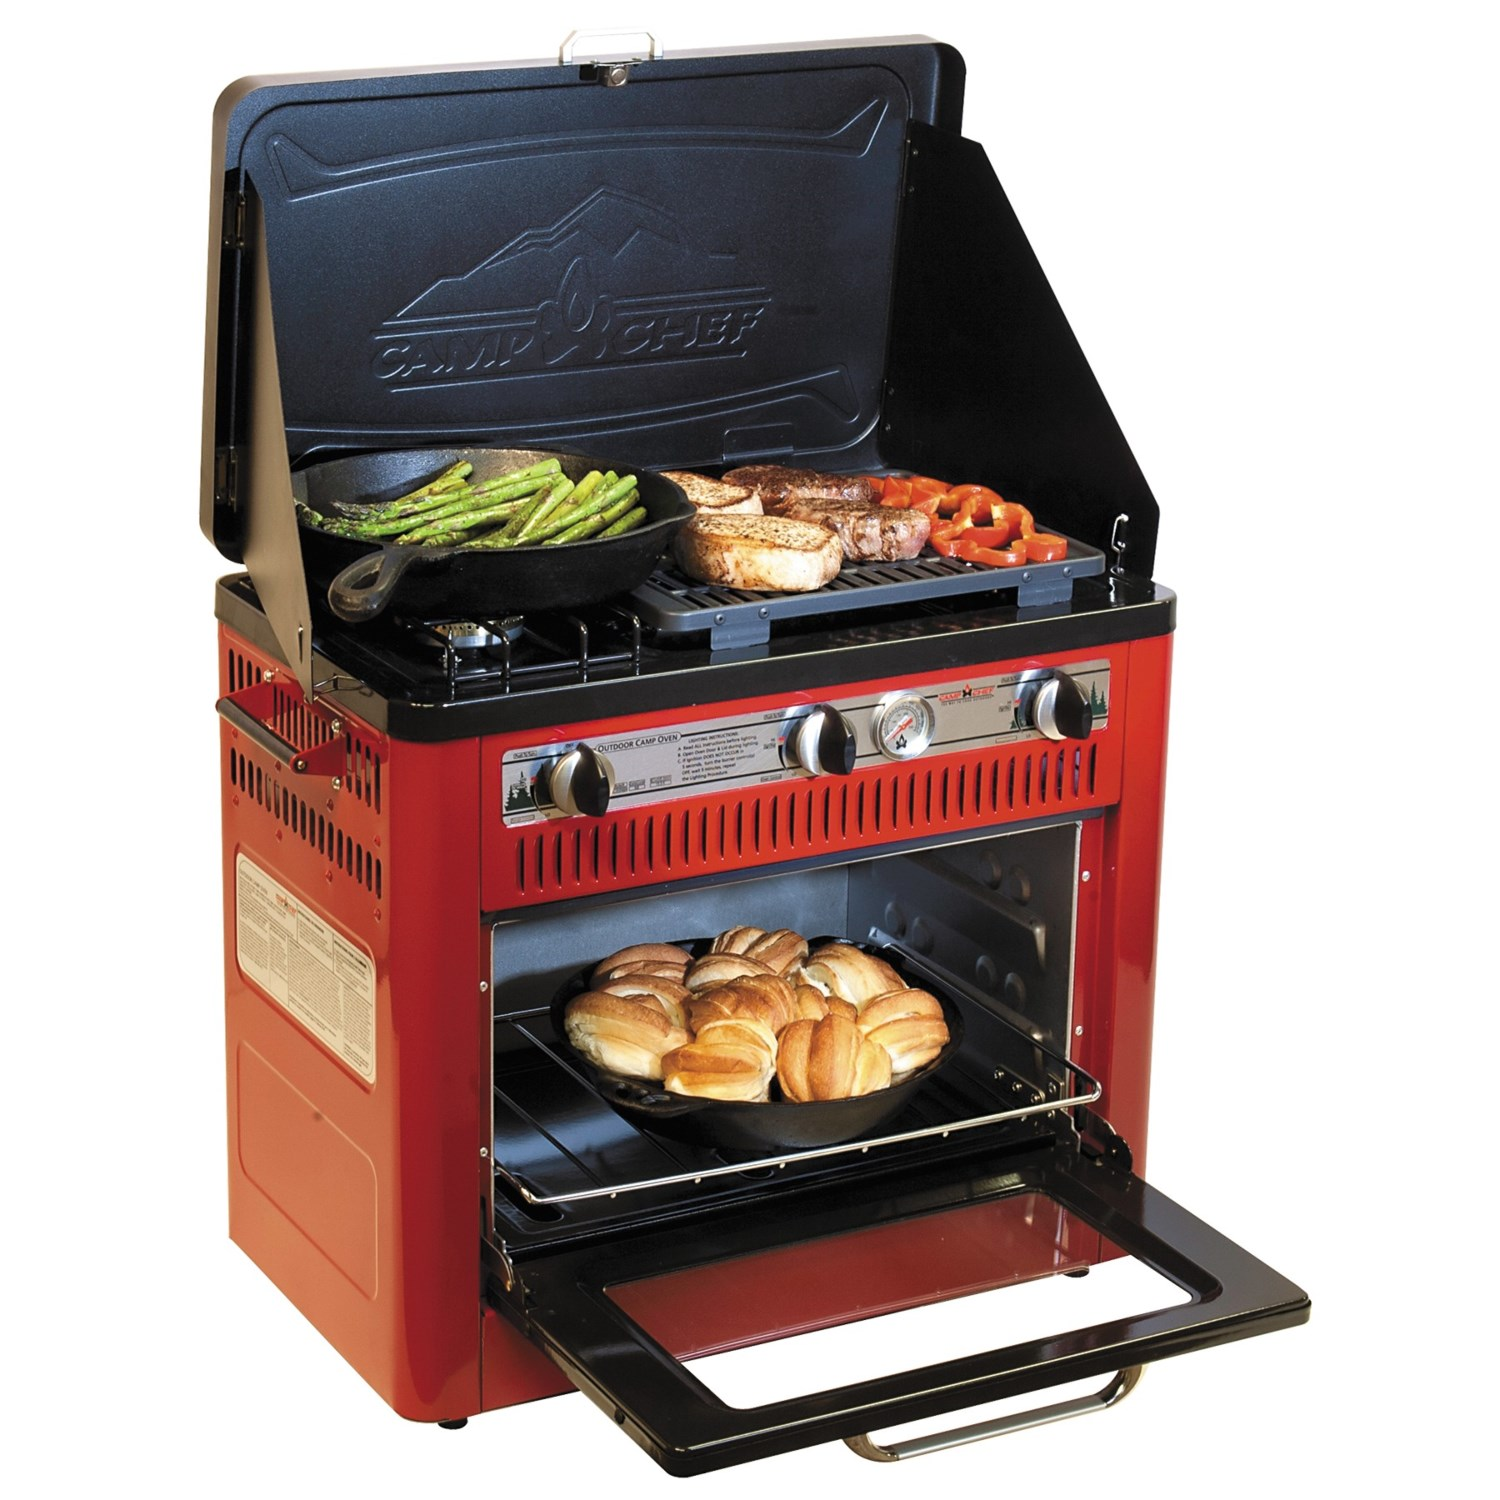 Camp Chef Outdoor Camp Oven With Grill Propane 4979p